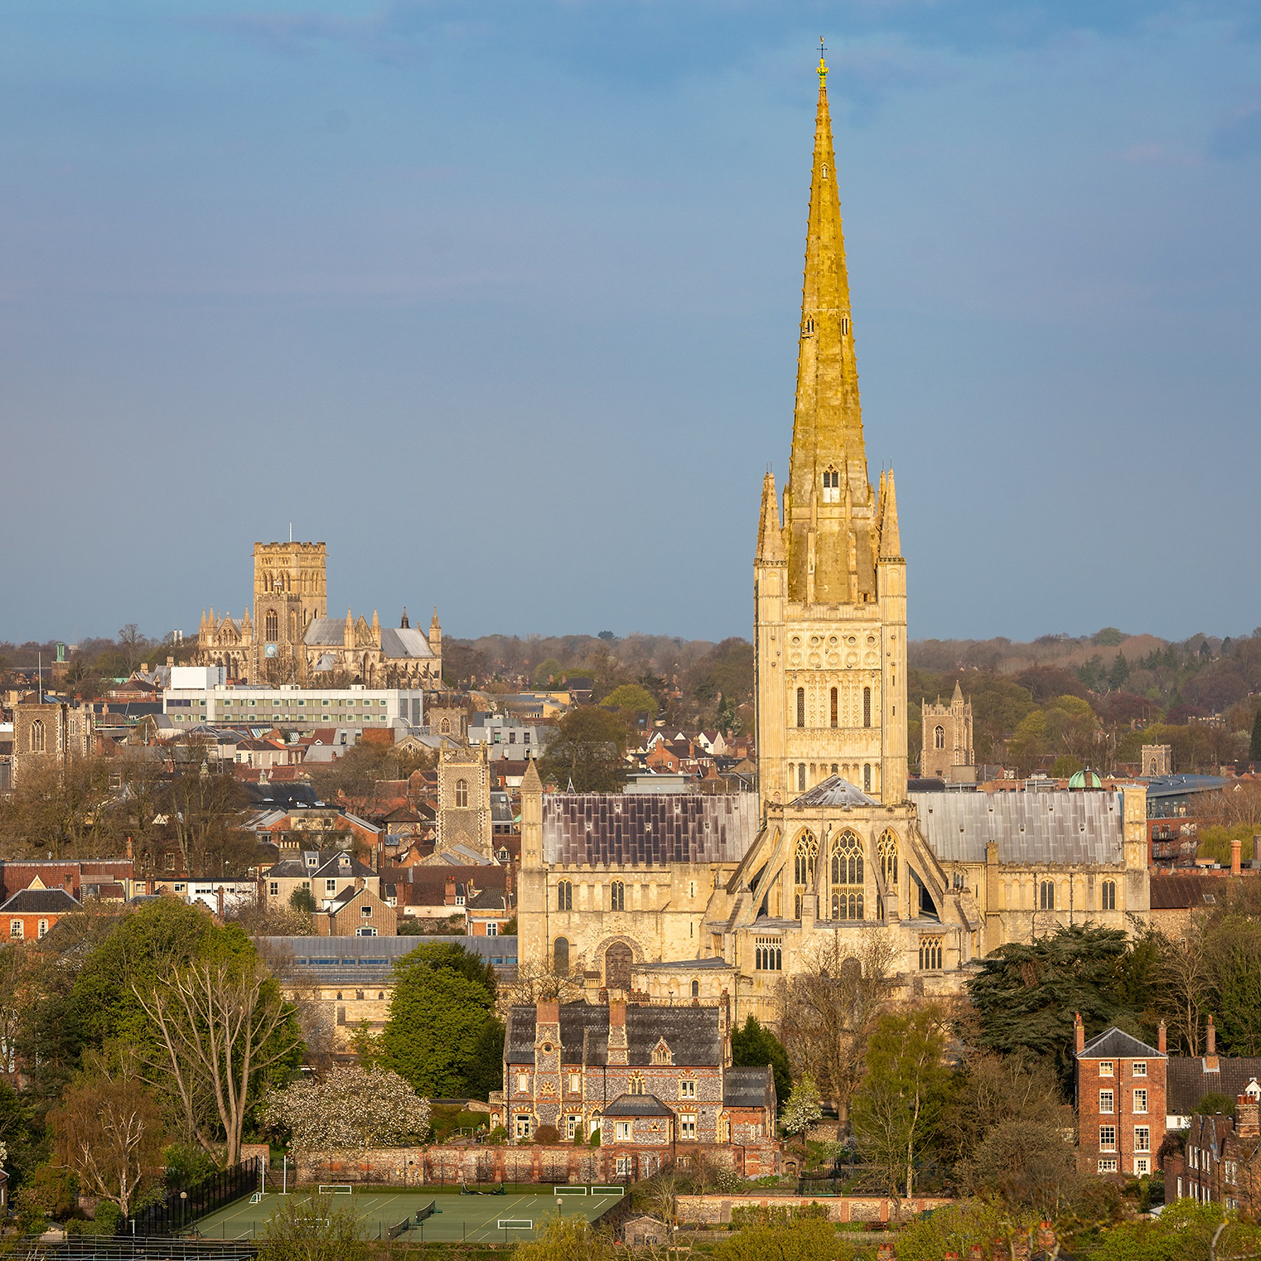 Norwich-Cathedral-and-Cathedral-of-St-John-the-Baptist-(c)-Bill-Smith